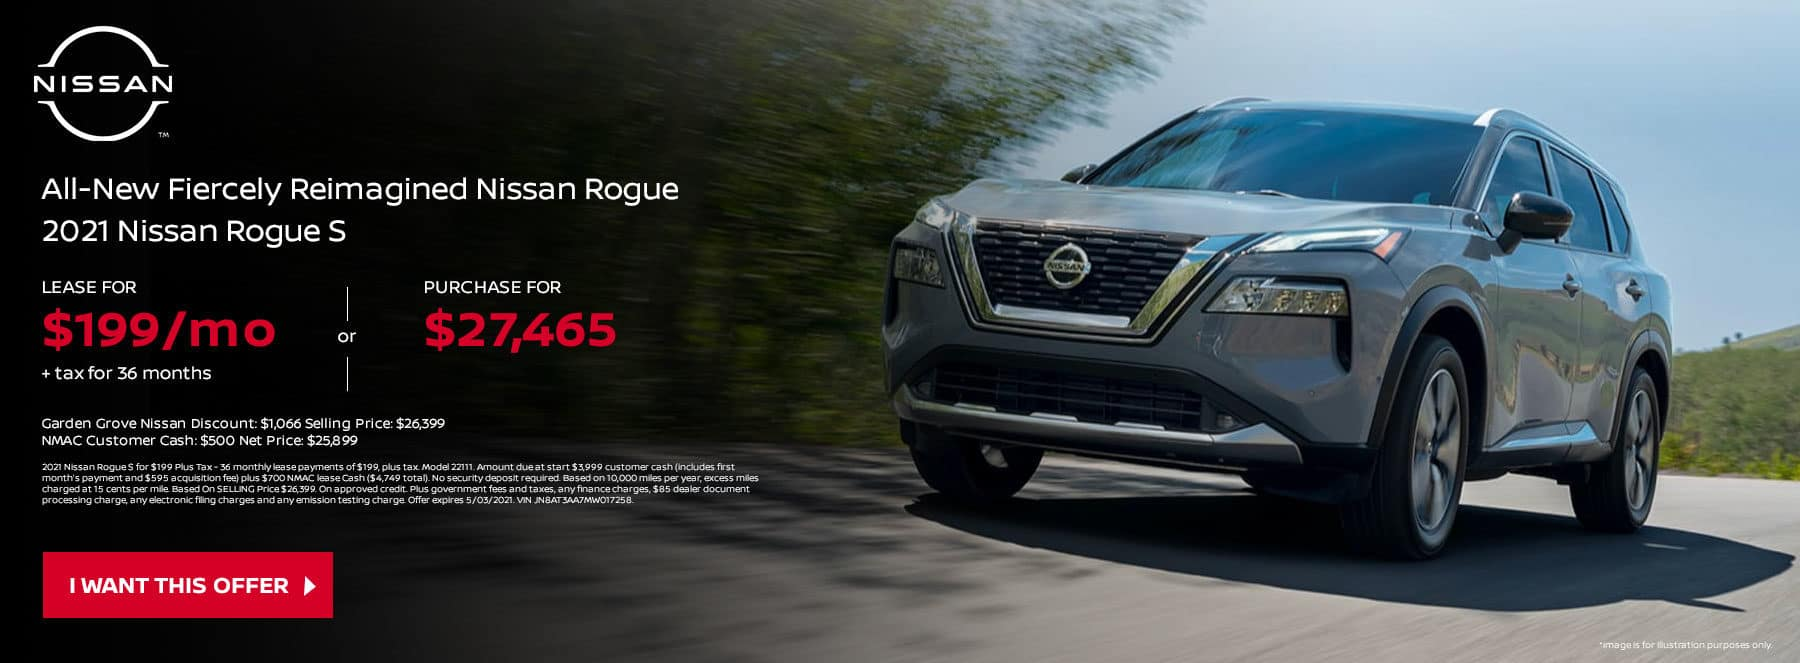 2021 Nissan Rogue S LEASE FOR $199 Per Mo. + Tax for 36 months OR PURCHASE FOR MSRP: $27,465 Garden Grove Nissan Discount: $1,066 Selling Price: $26,399 NMAC Customer Cash: $500 Net Price: $25,899